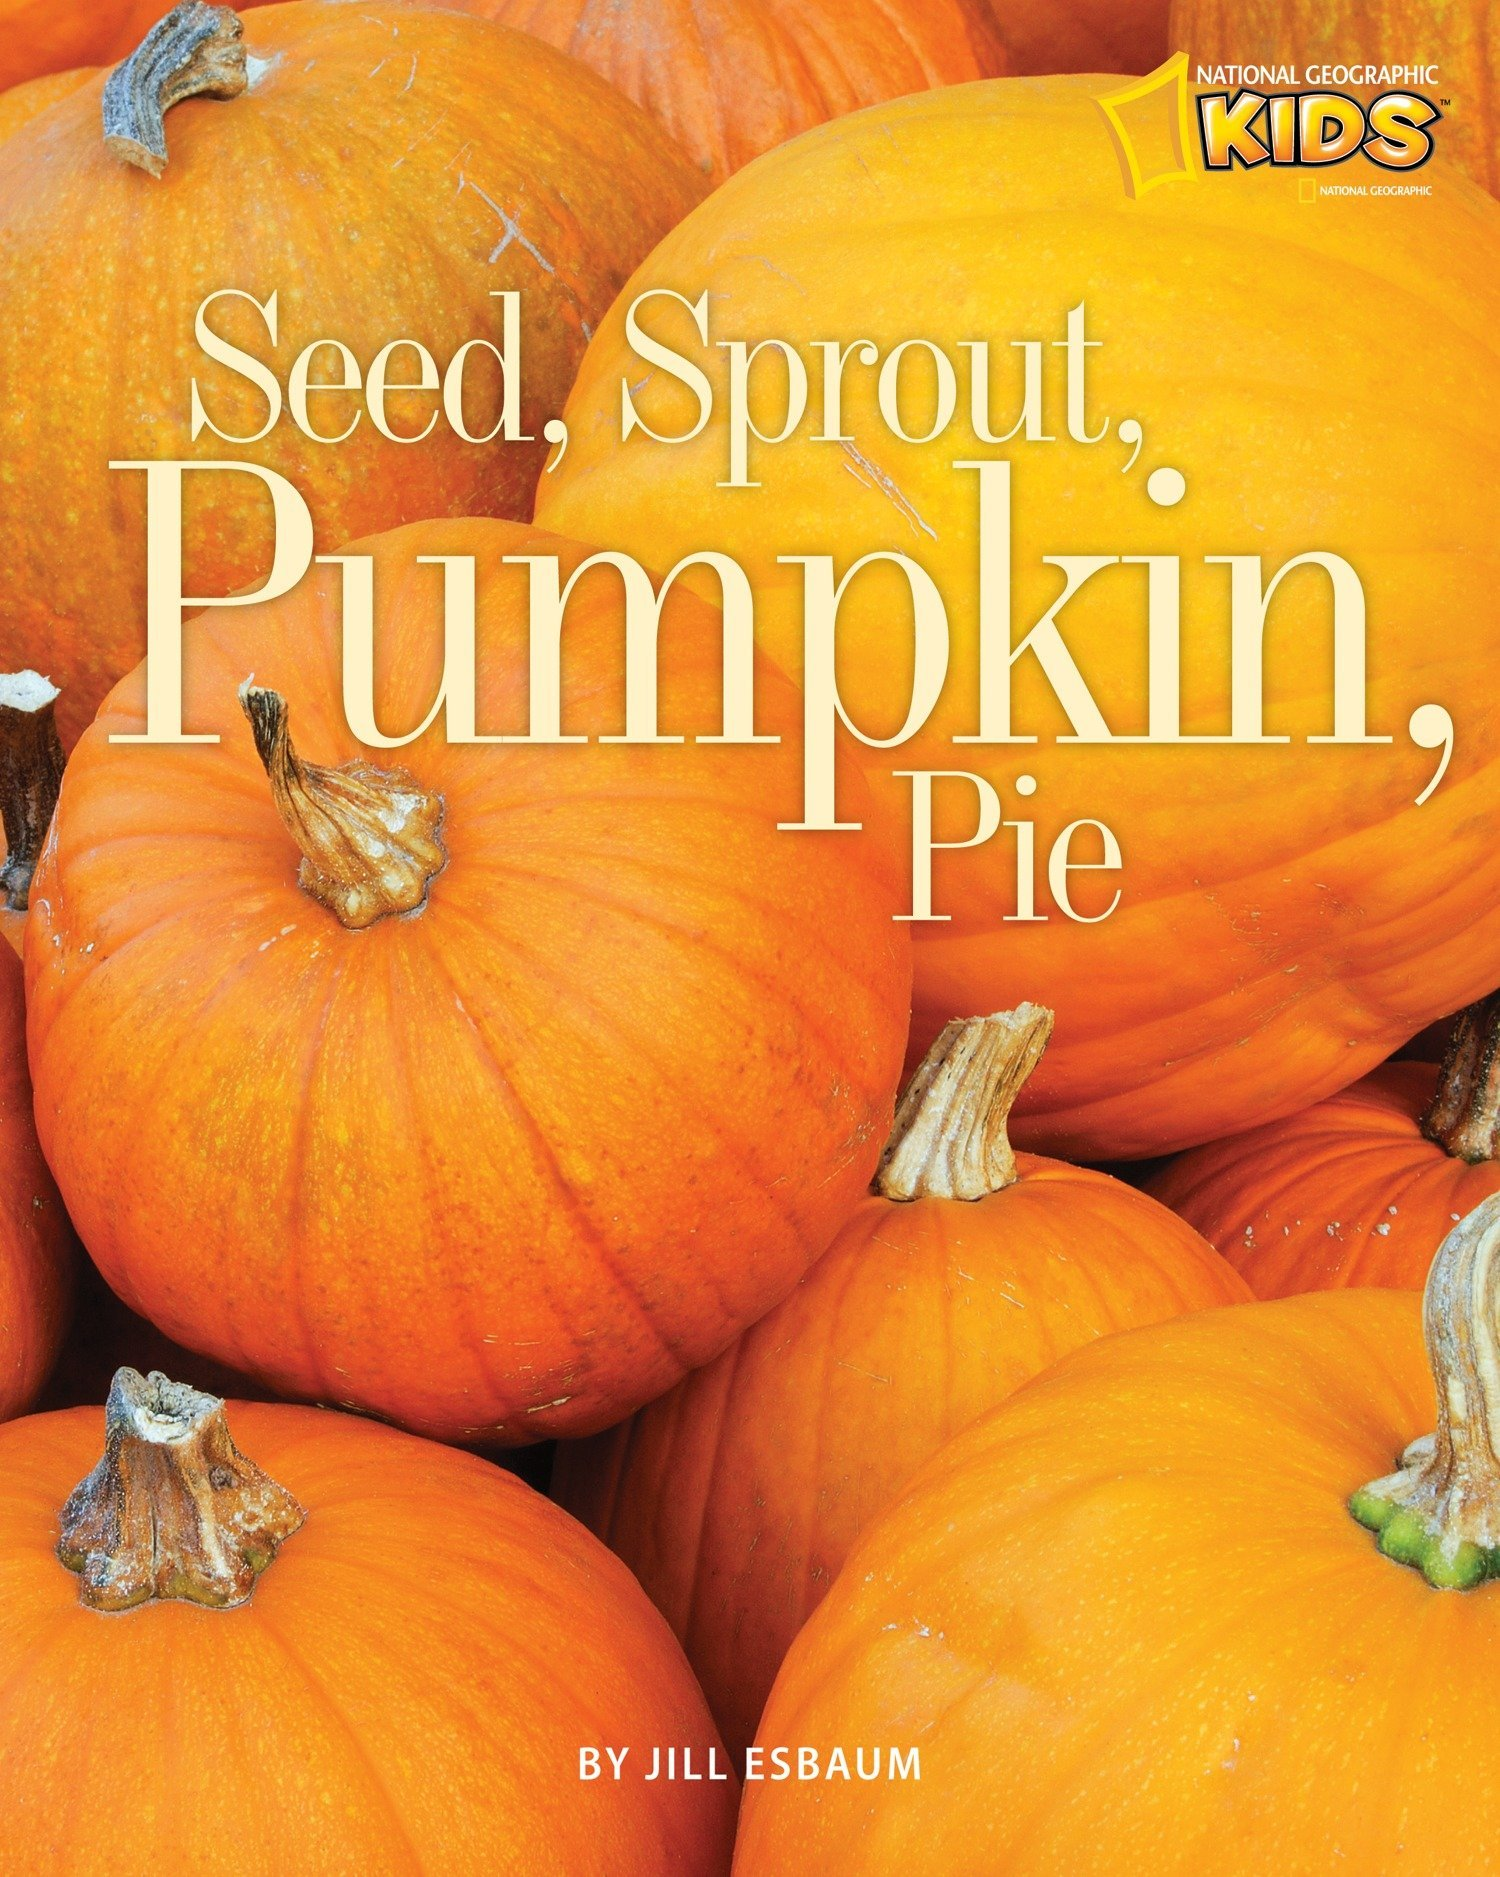 Seed Sprout Pumpkin Pie Picture The Seasons Jill Esbaum Sprouting Diagram Germination Images Google Search Might 9781426305825 Books